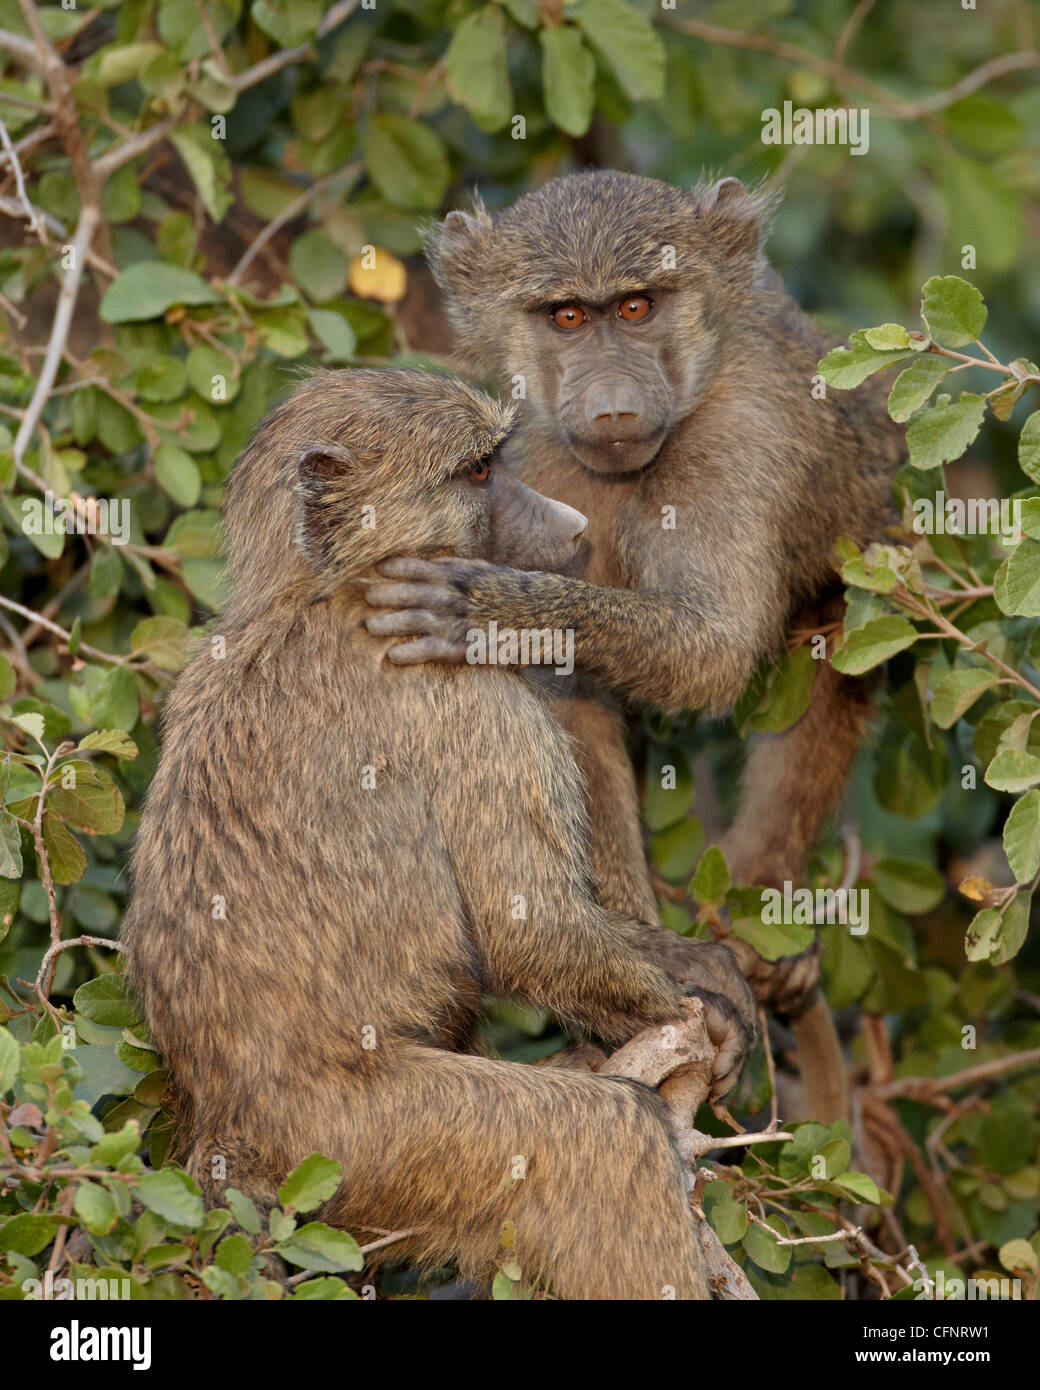 Two young Olive baboons (Papio cynocephalus anubis), Serengeti National Park, Tanzania, East Africa, Africa Stock Photo